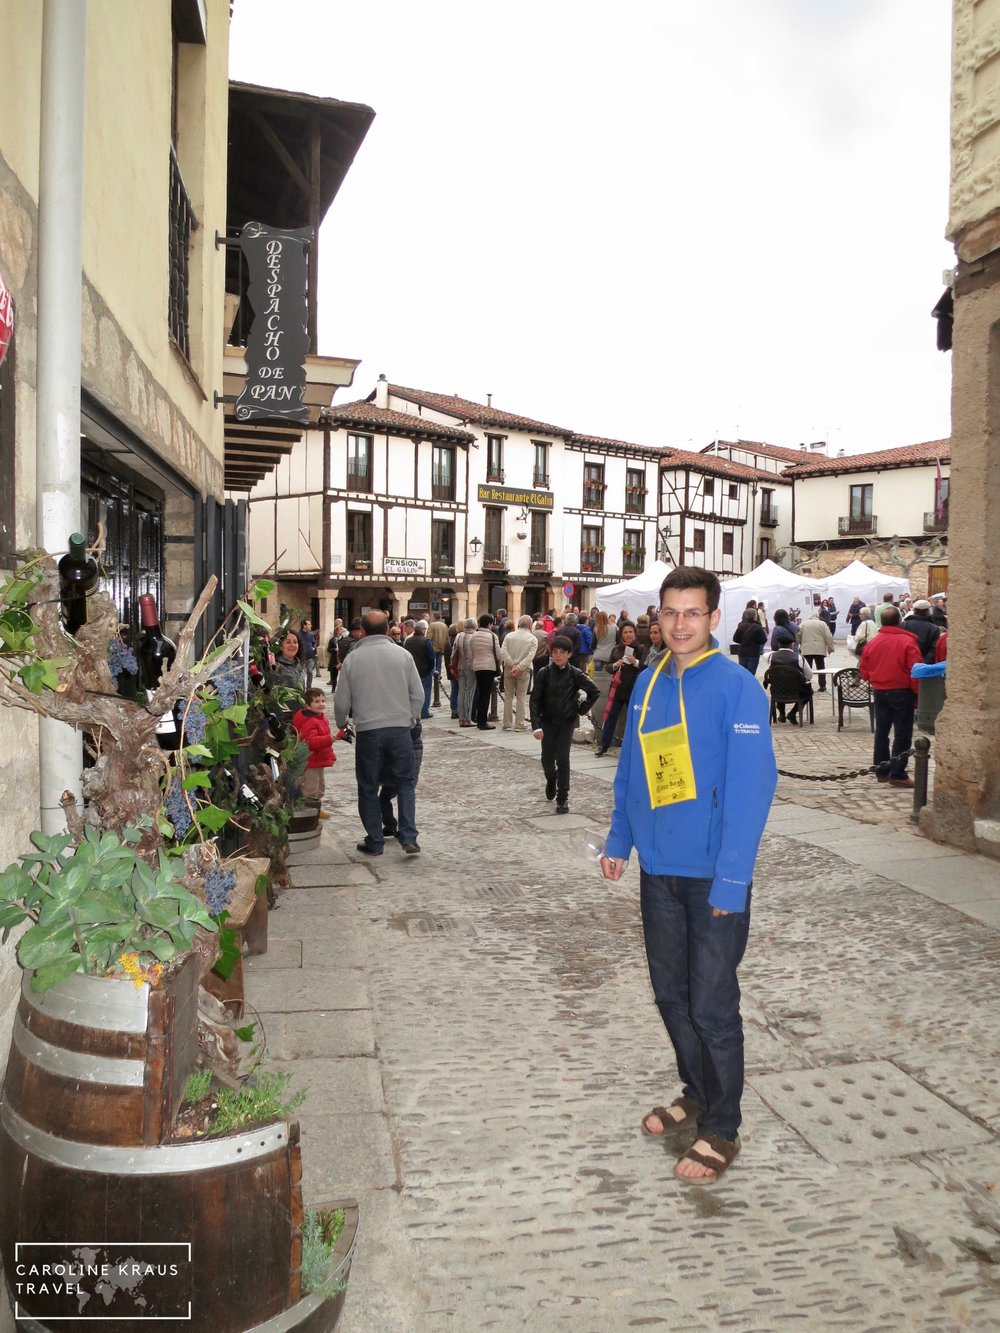 At the wine festival in Covarrubias, Spain